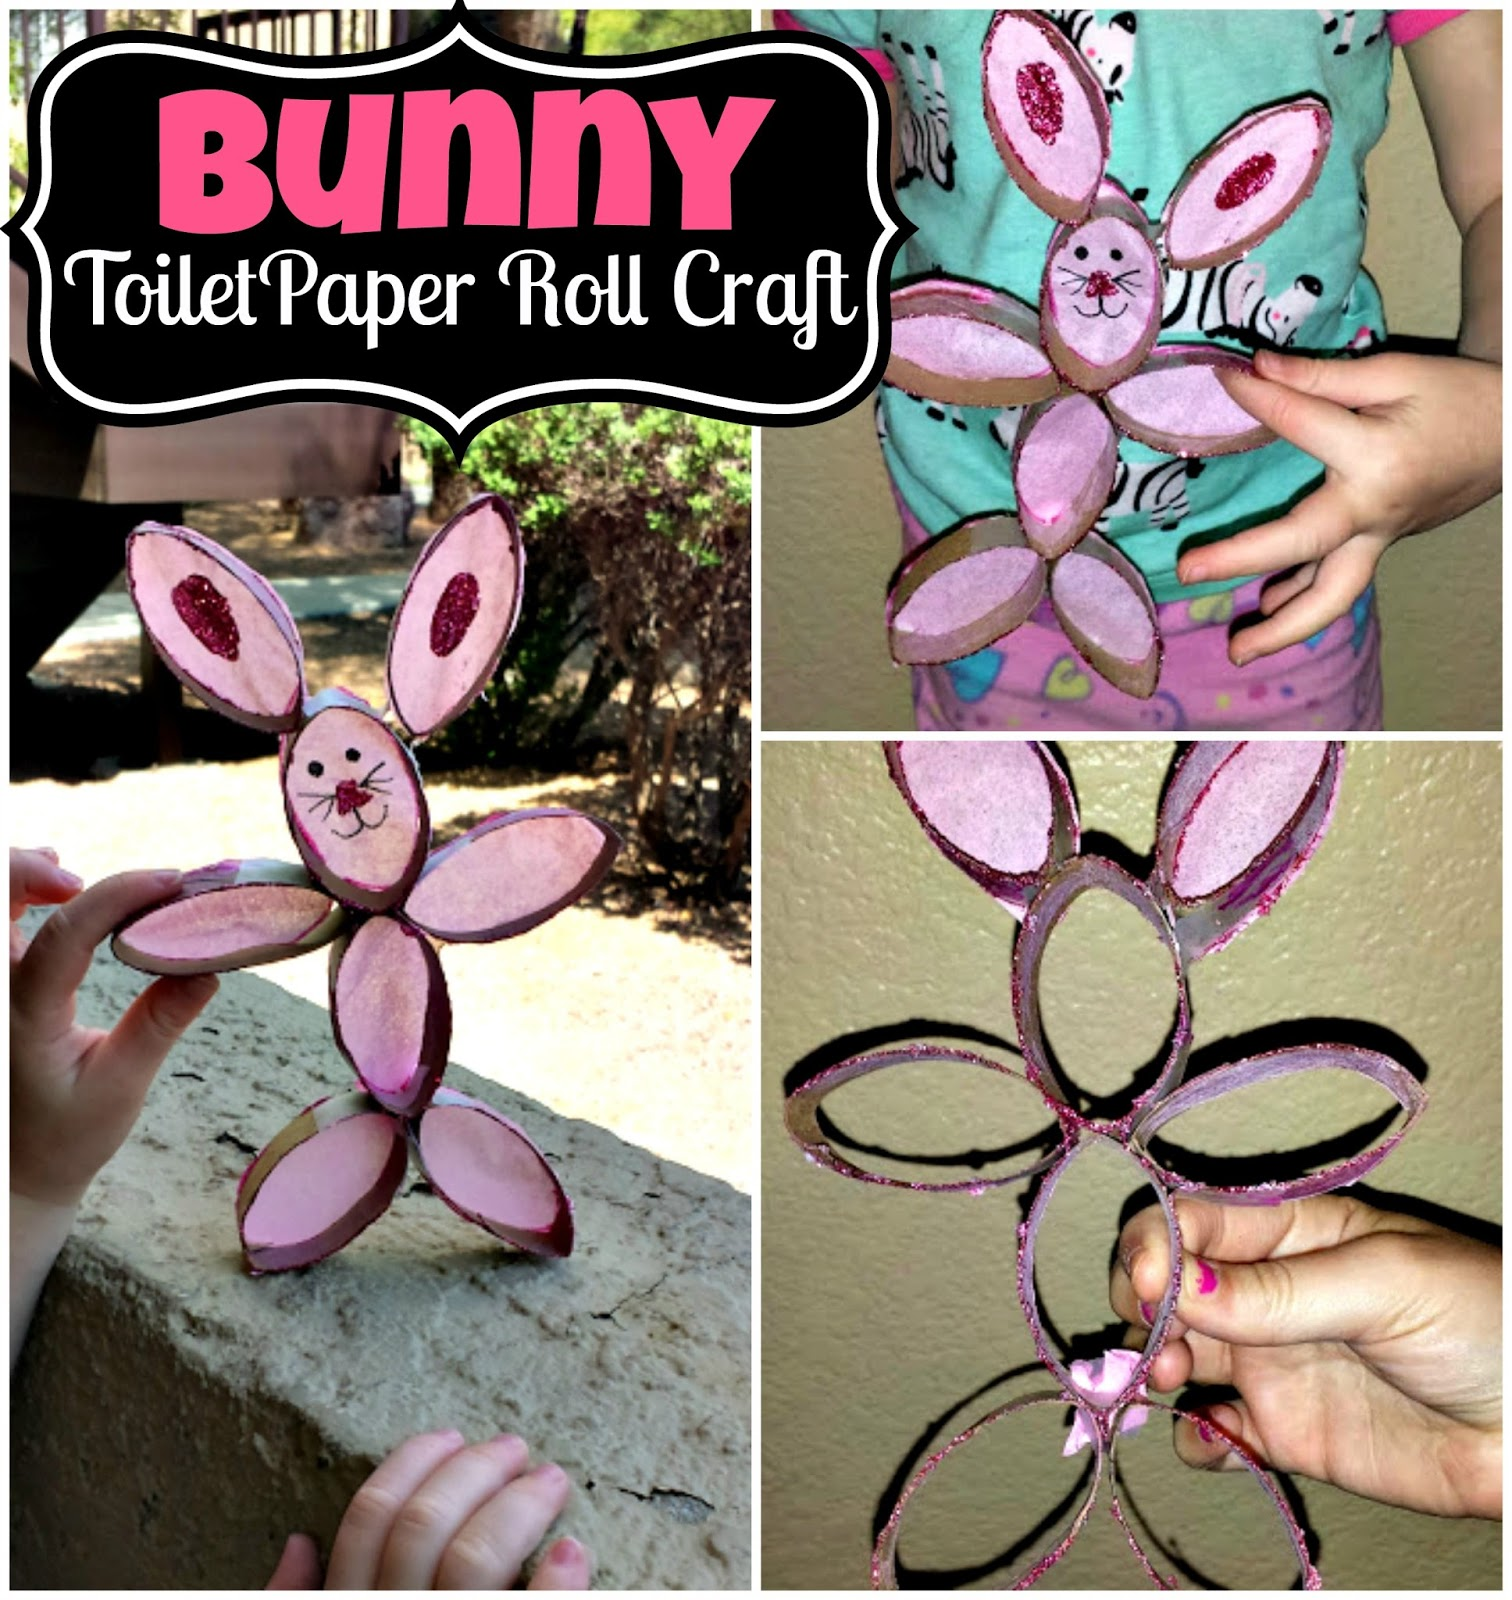 Diy Toilet Paper Roll Bunny Rabbit Craft For Kids Crafty